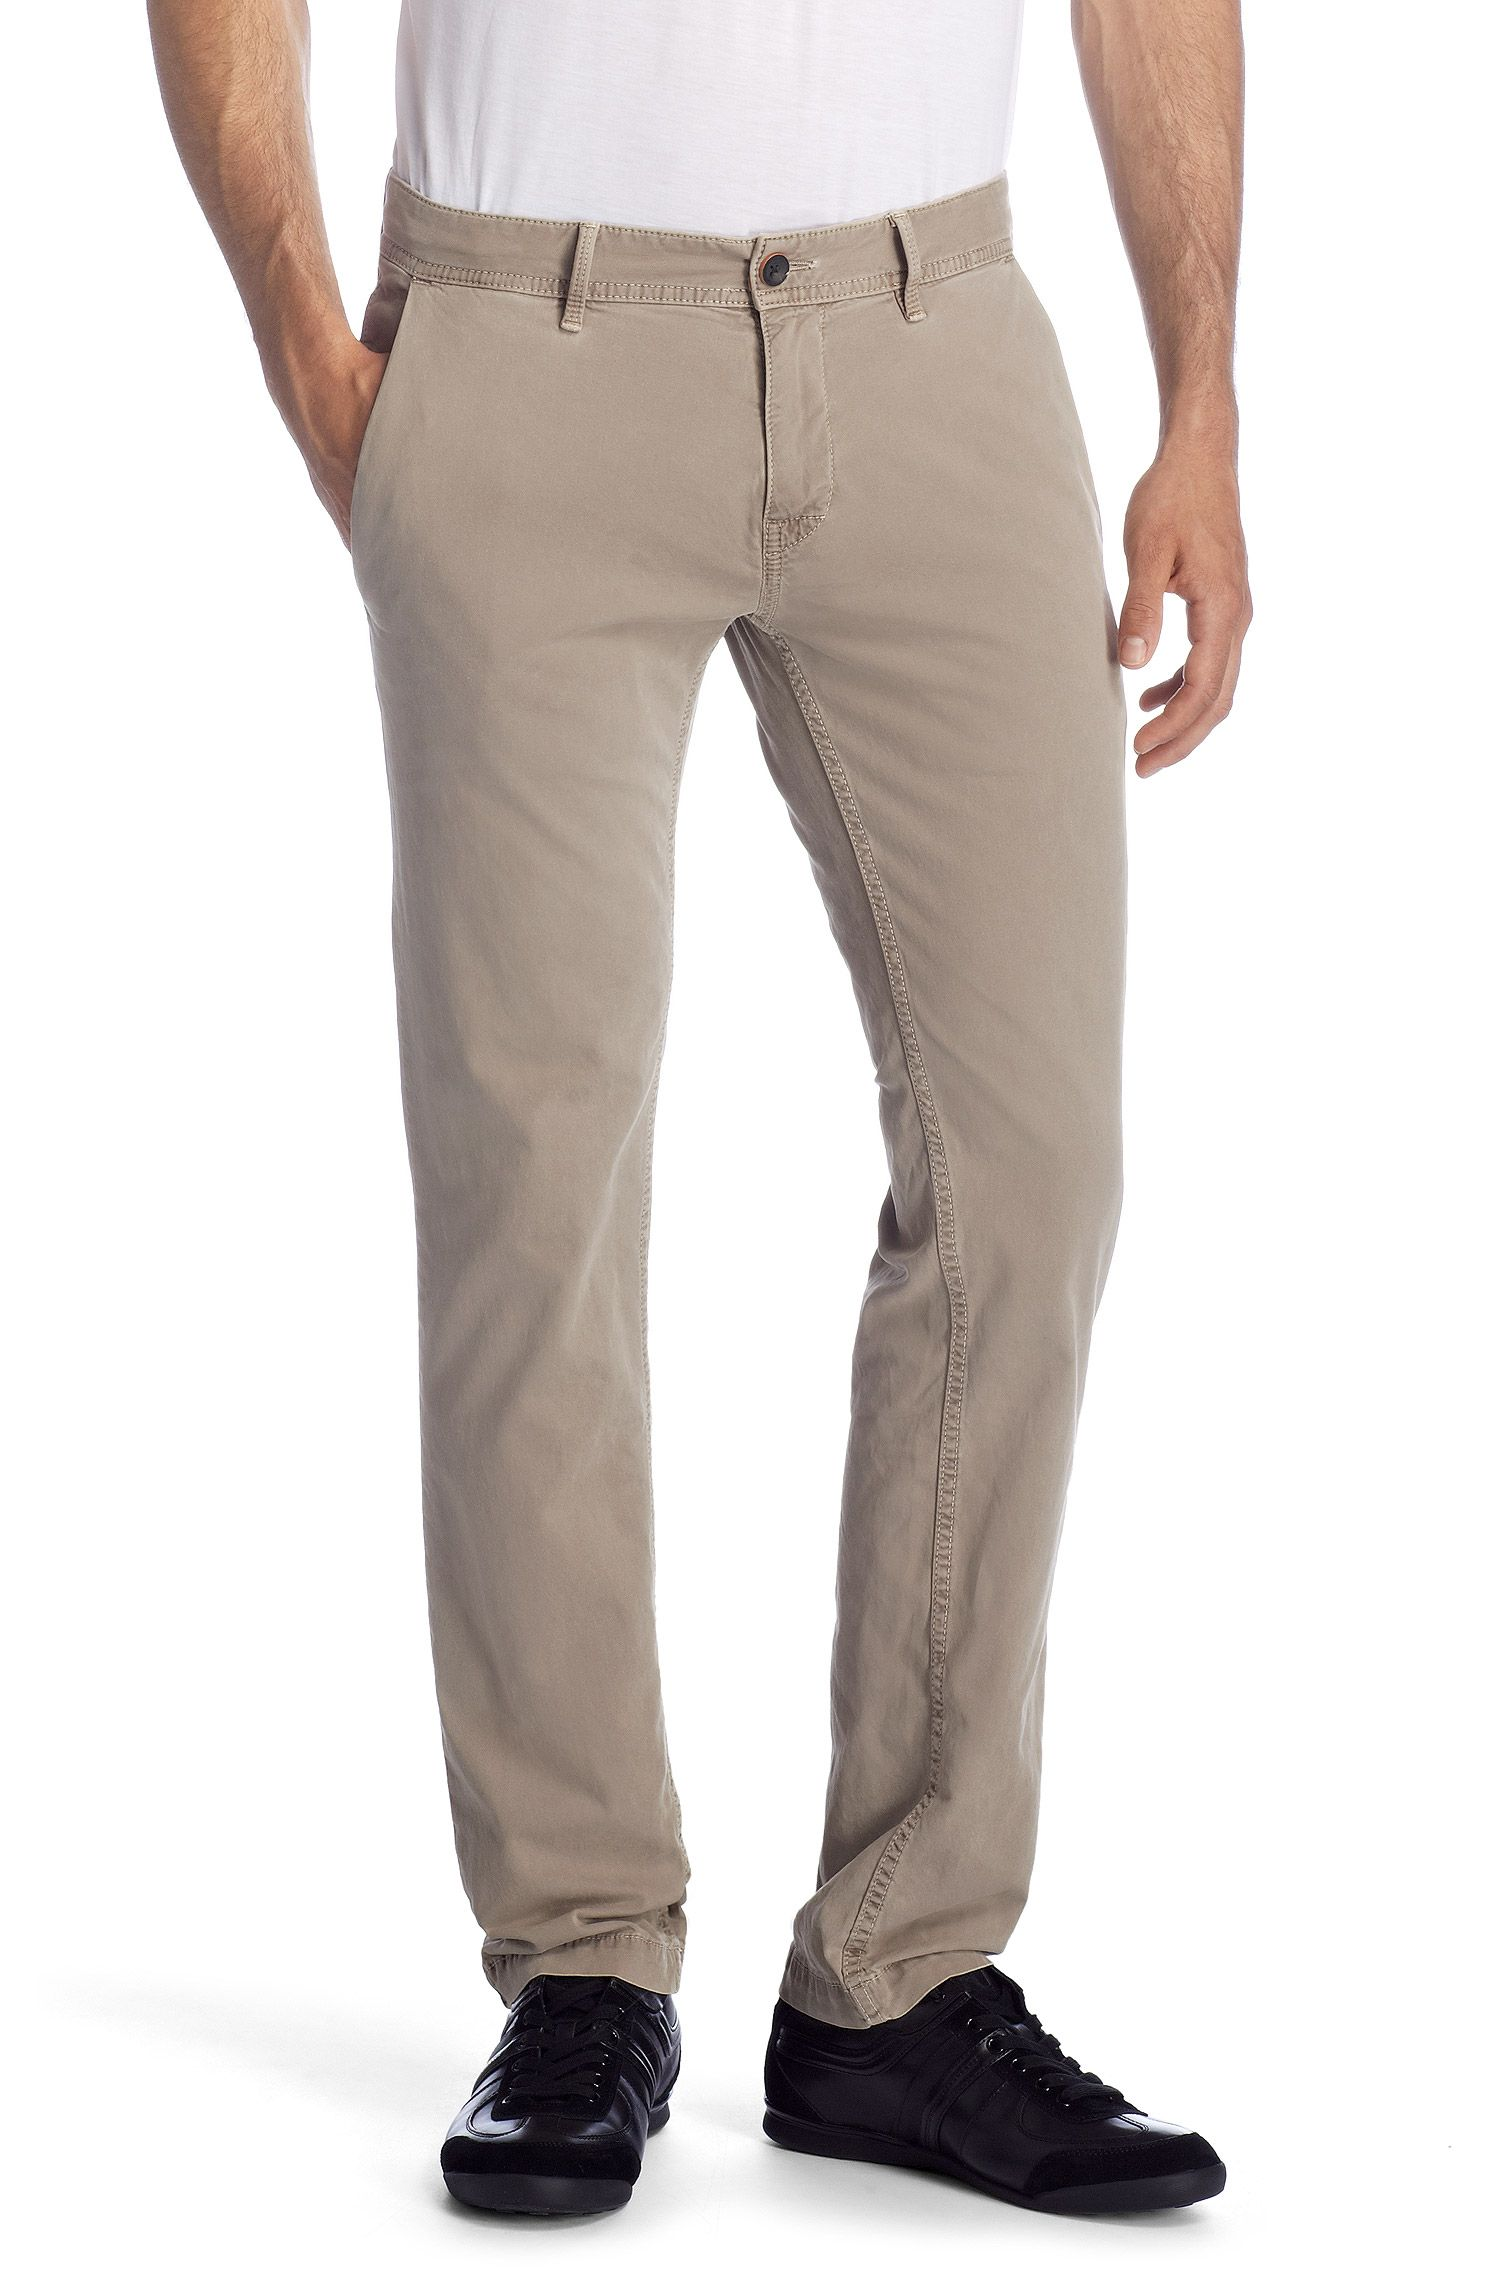 Pantalon détente Slim Fit, Schino-Slim1-D